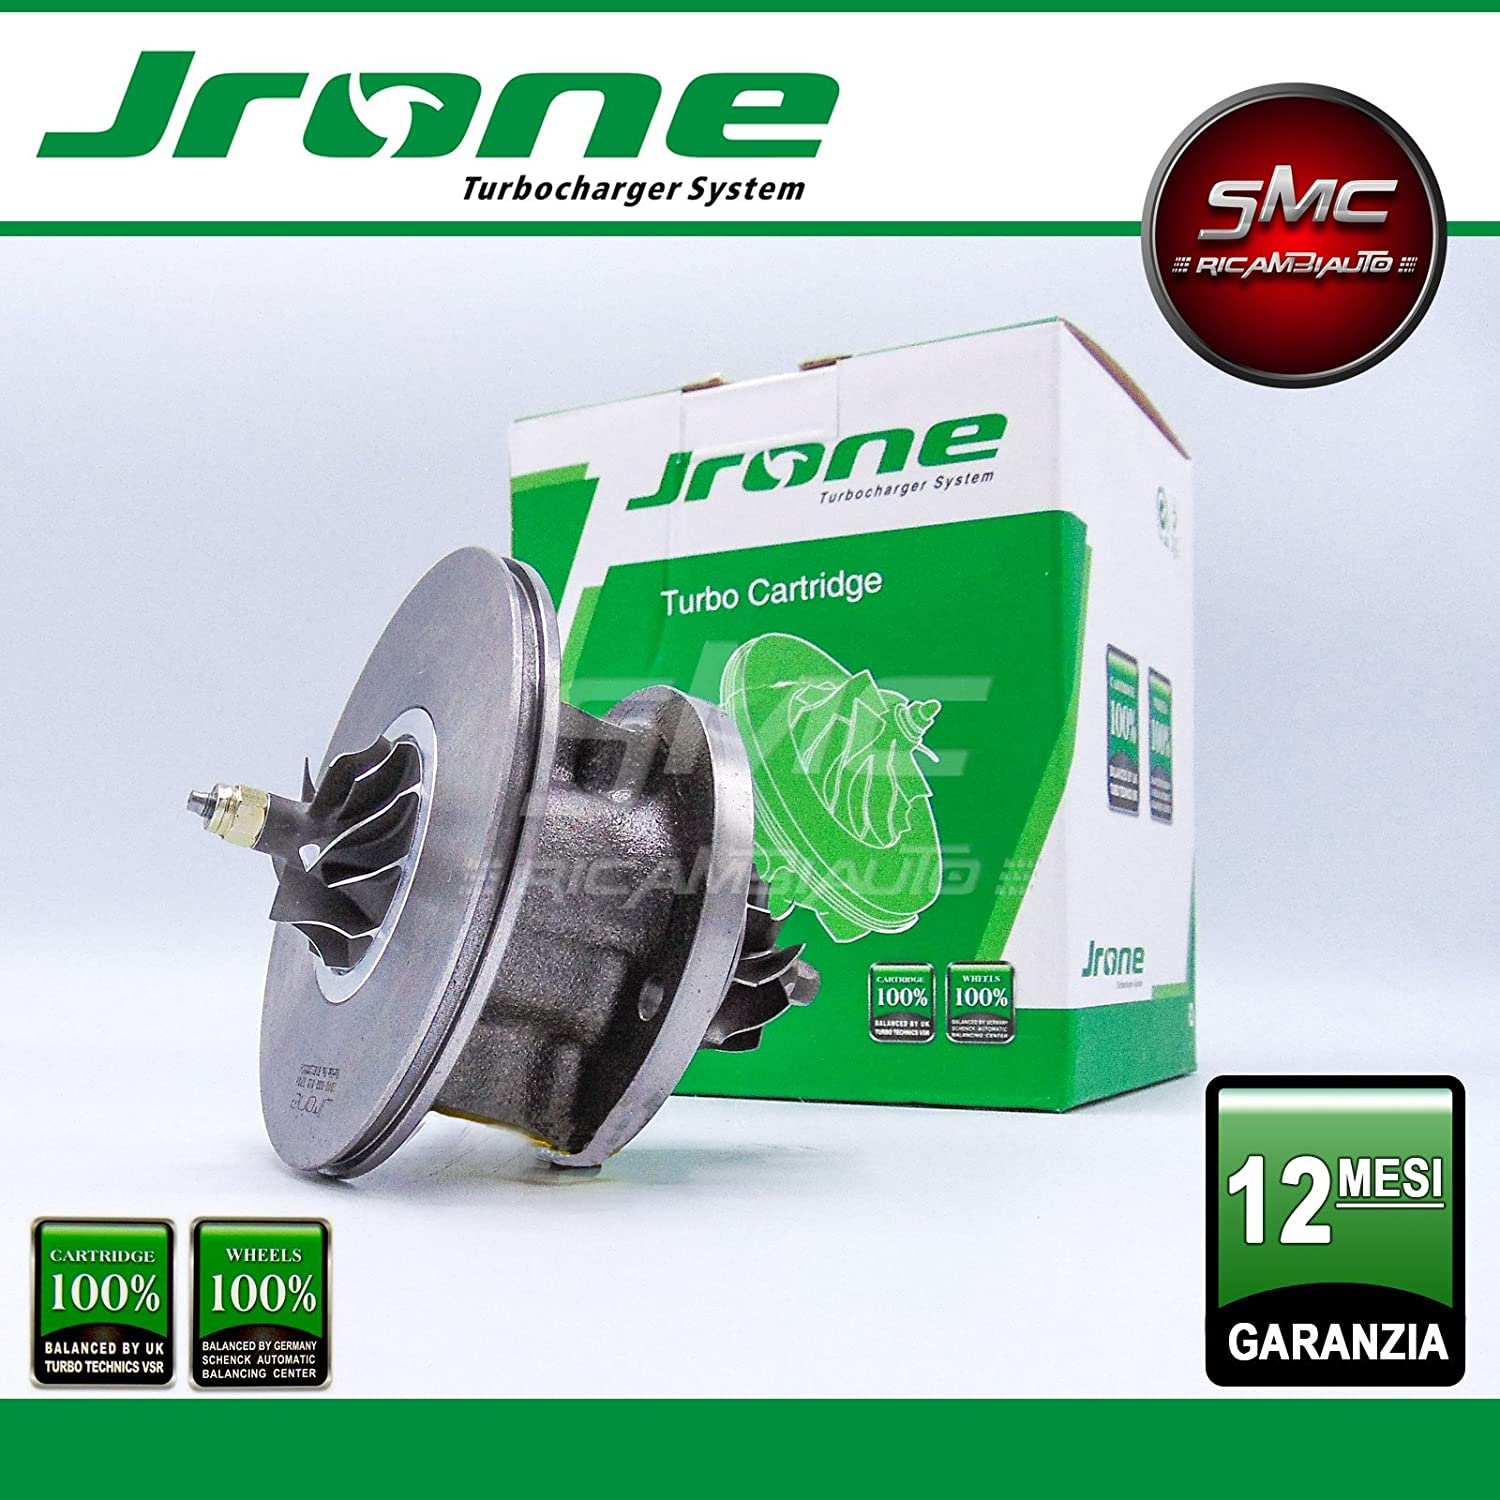 1000 - 030 - 012 coreassy turbina Garret turbocompressore Original JRONE: Amazon.es: Coche y moto